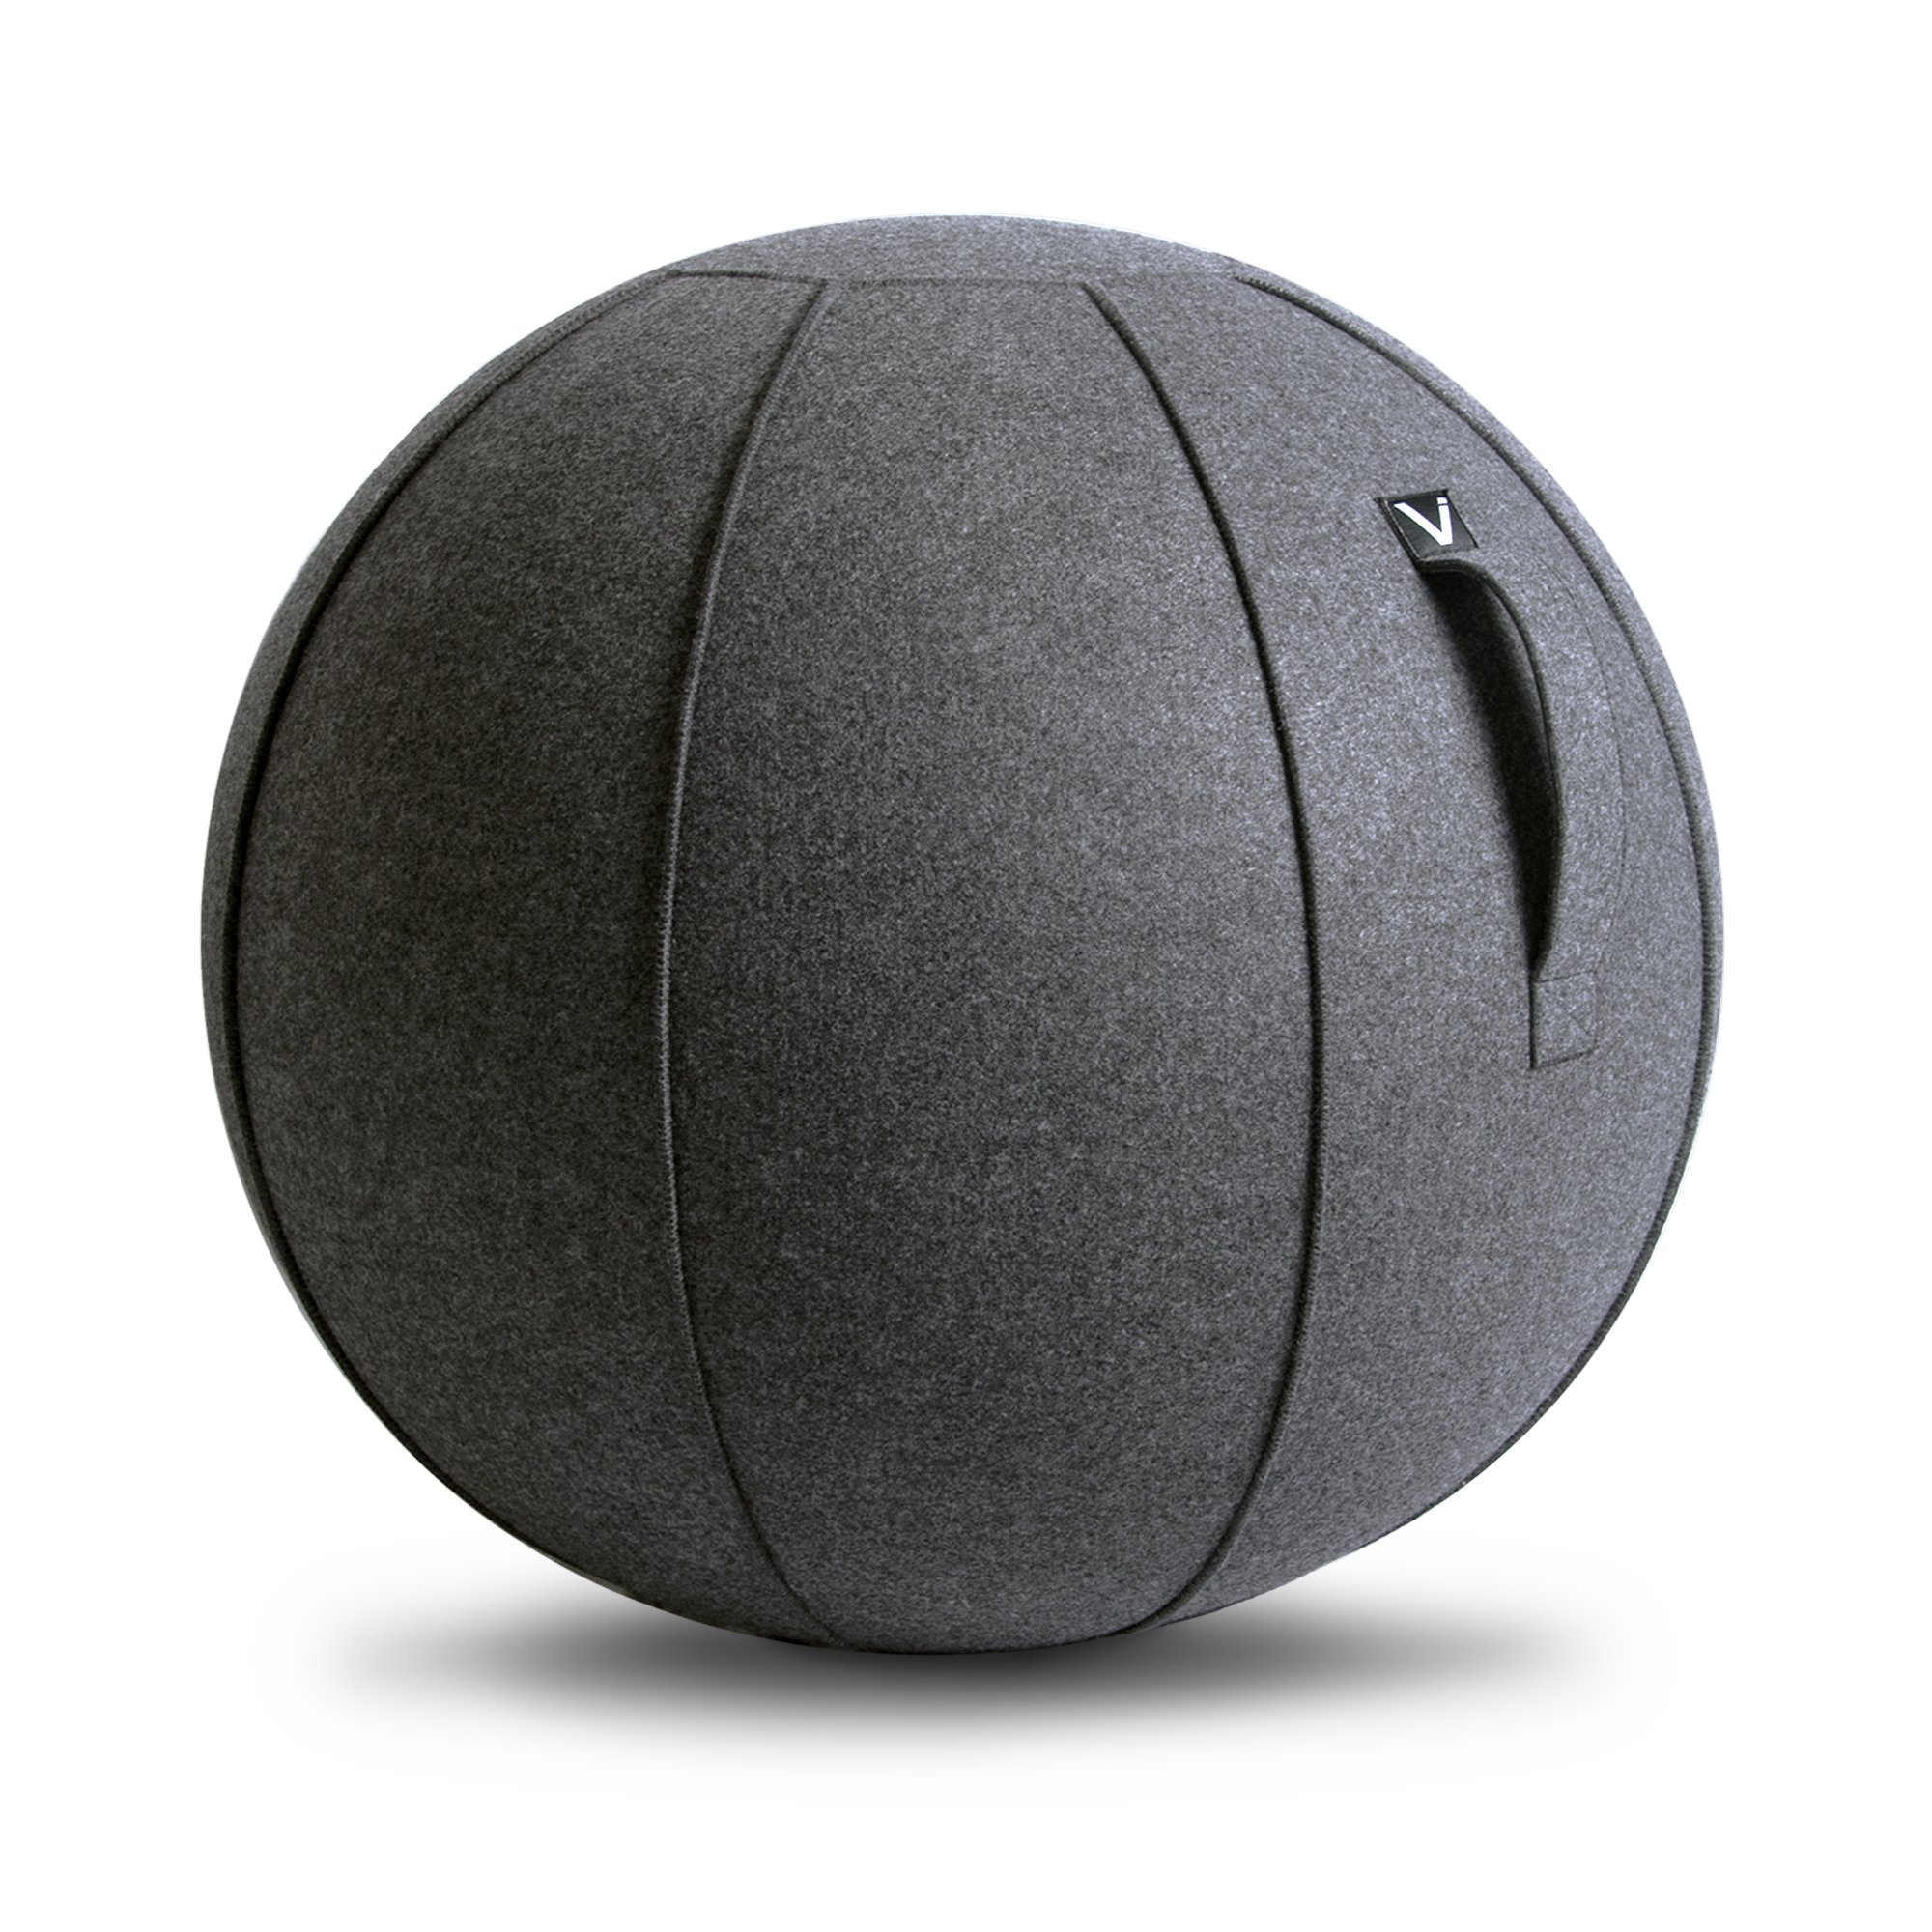 Vivora Luno - Self-Standing Sitting Ball Chair for Home, Office, Yoga, Exercise, Stability, Fitness, and Birthing Ball, with Pump and Handle, Base Ring Not Needed